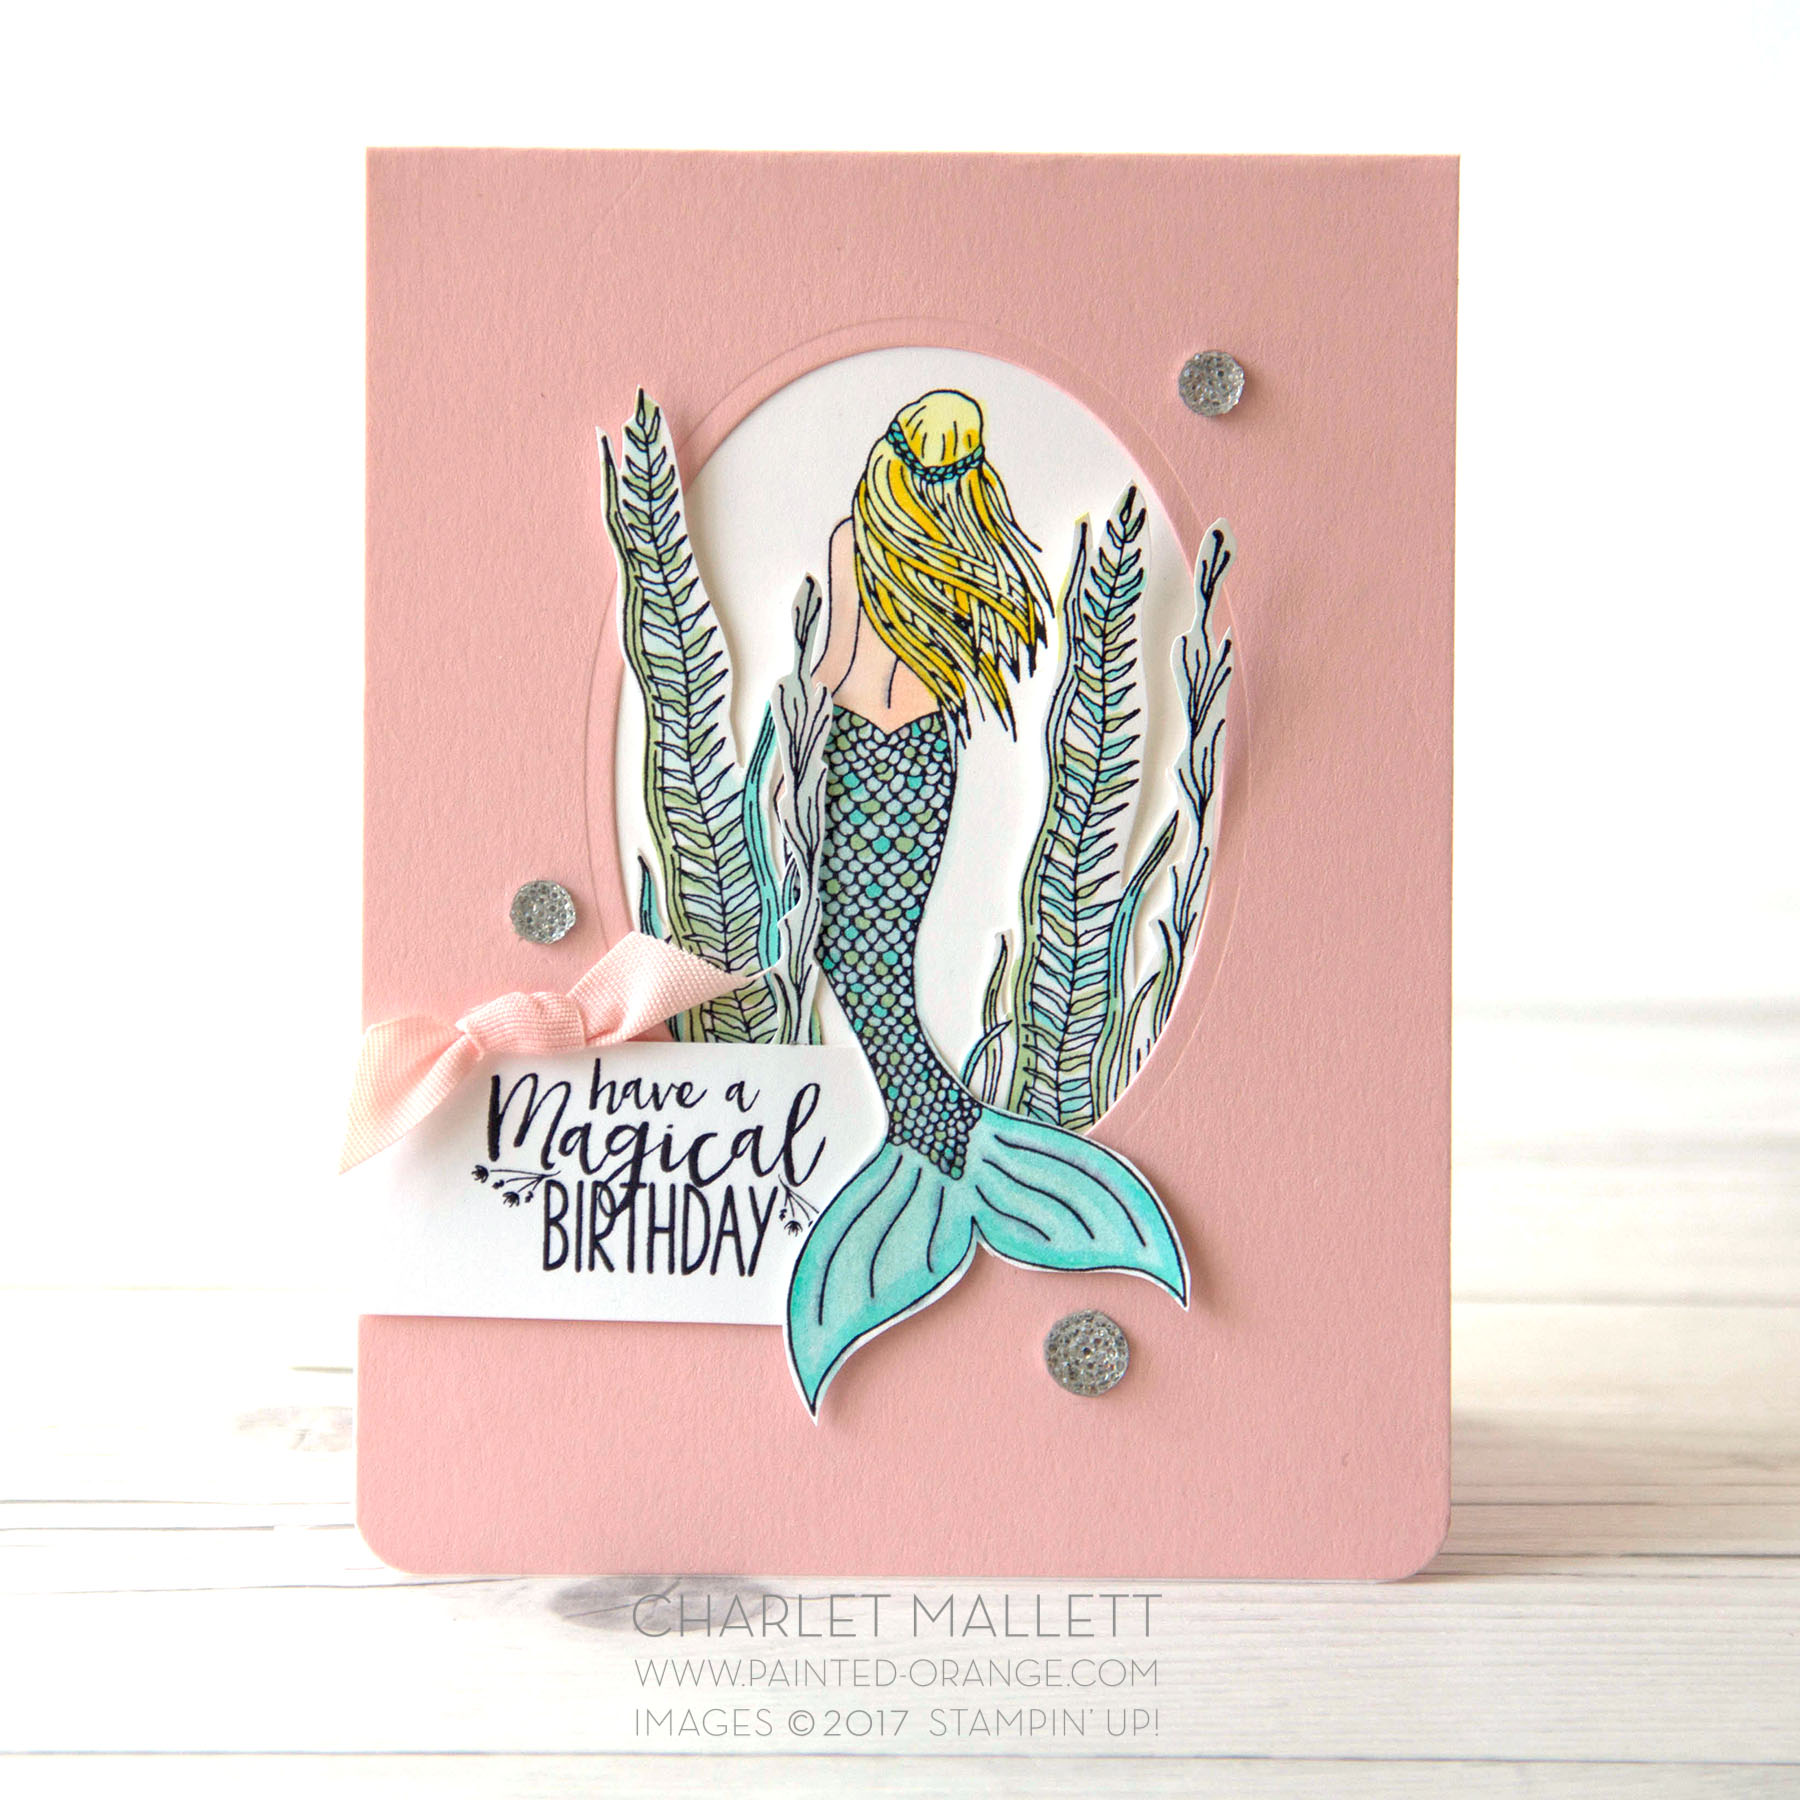 Magical Mermaid Card - Charlet Mallett - Stampin' Up!